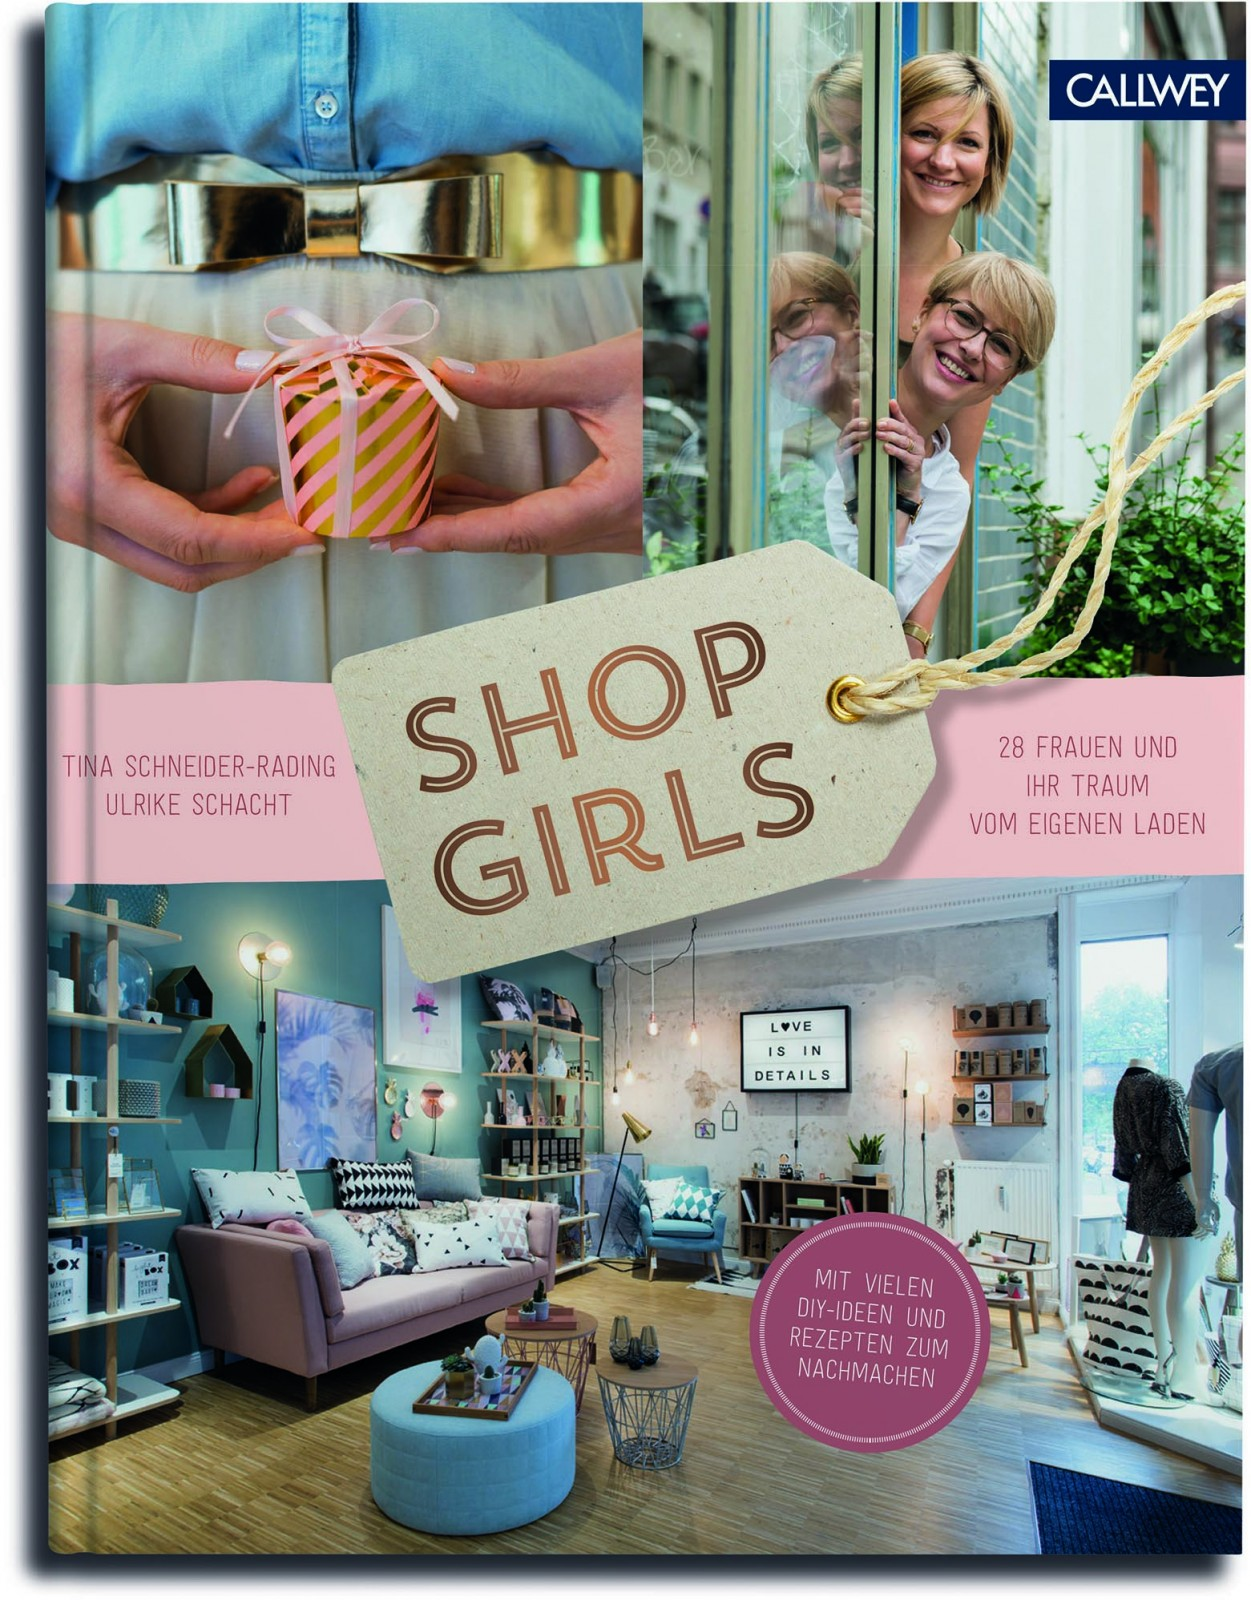 Shop Girls Cover